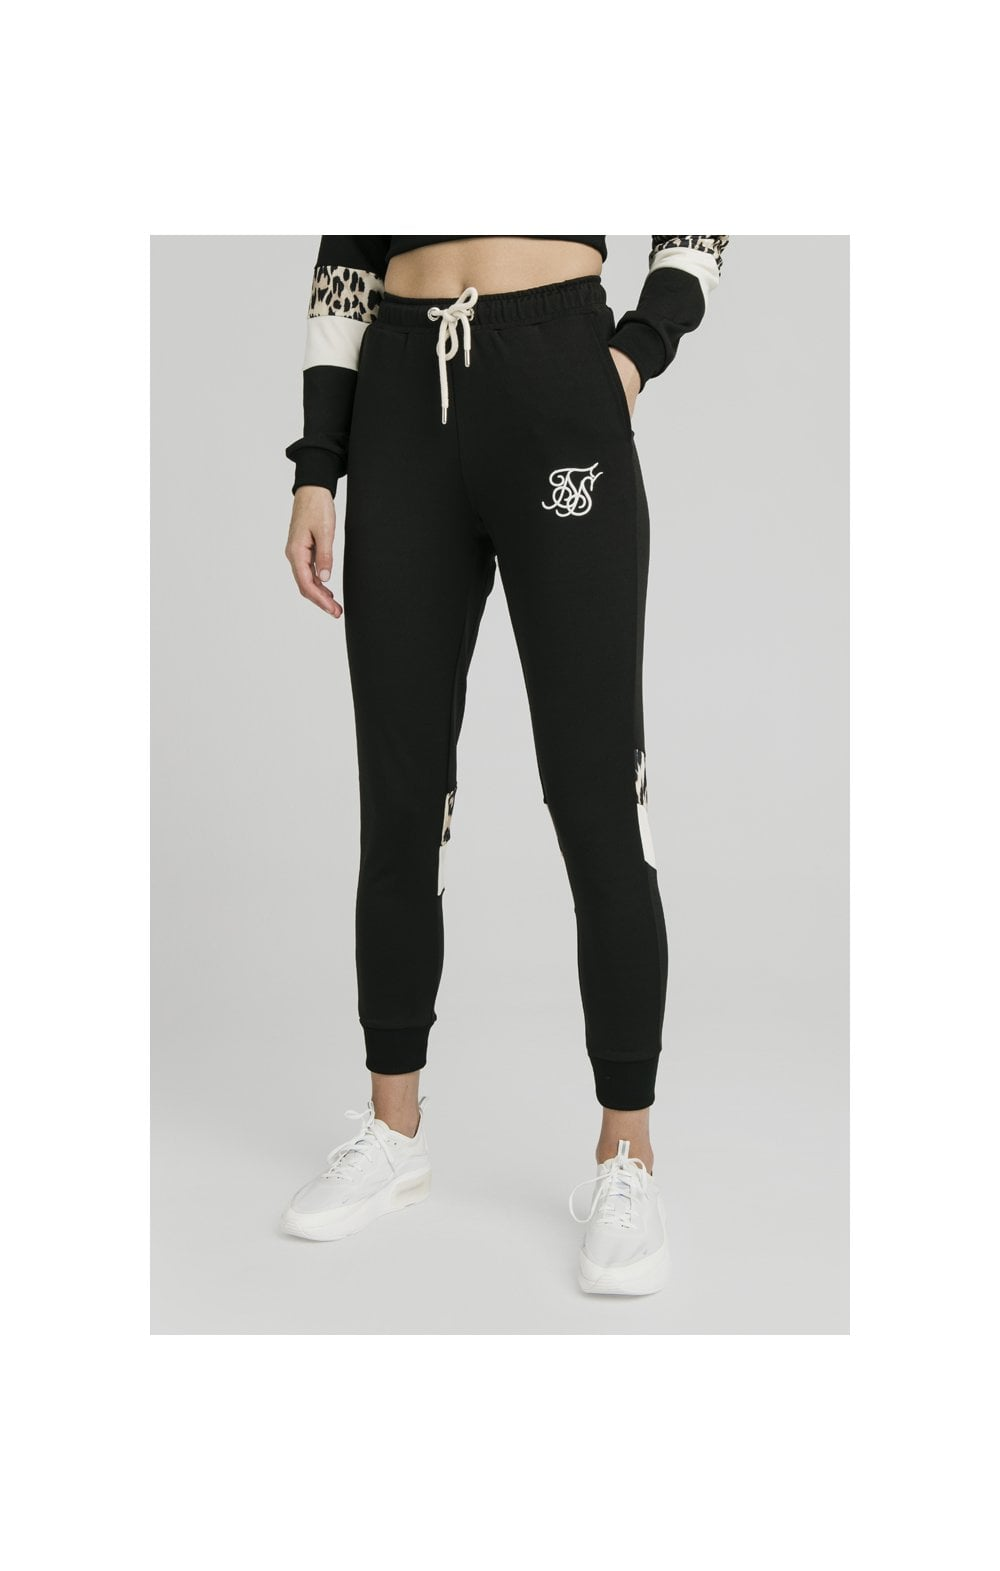 SikSilk Leopard Panel Track Pants – Black (2)